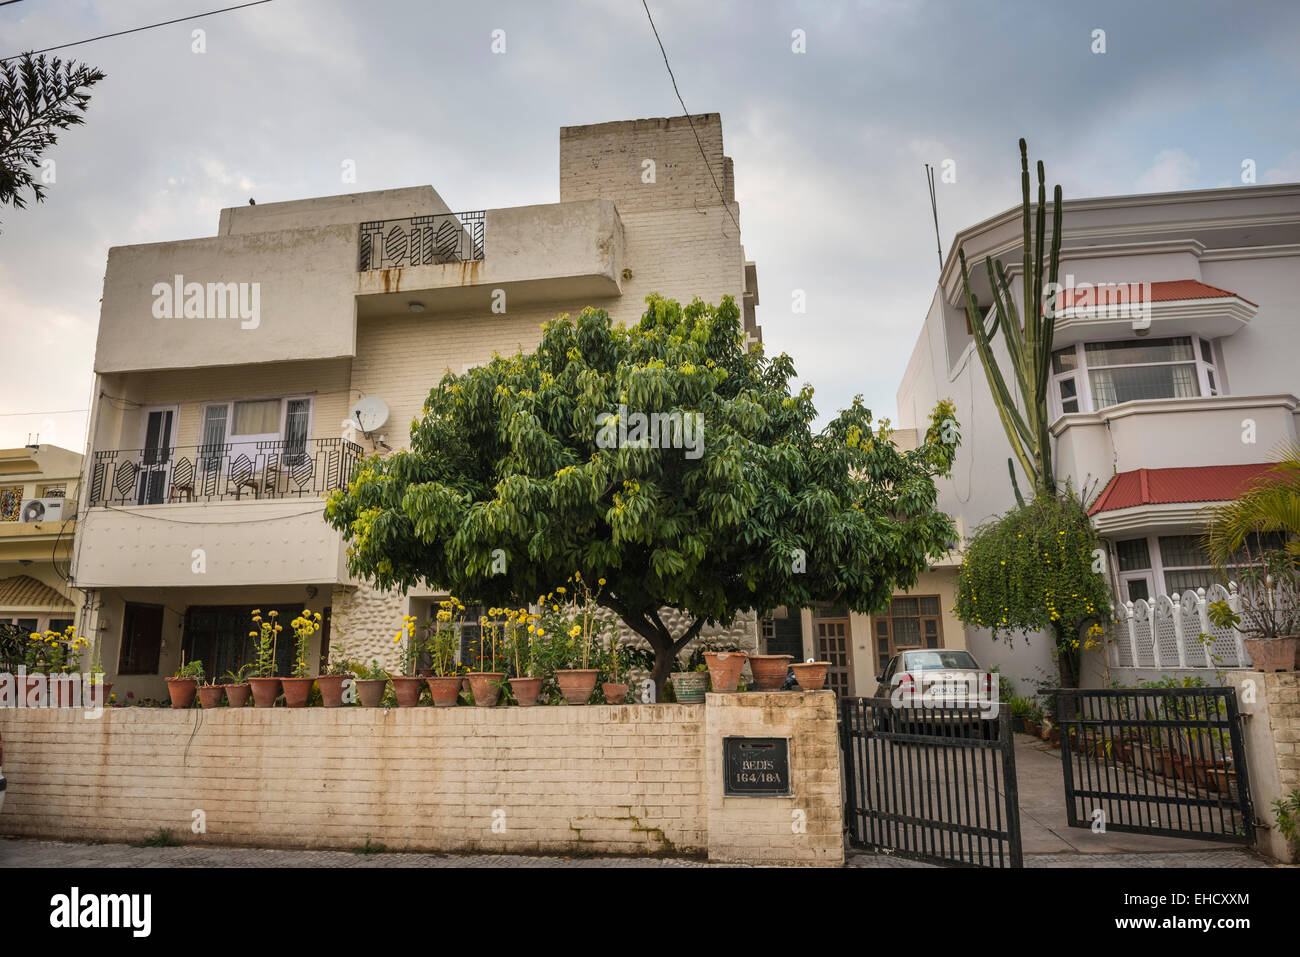 Spacious 1950s homes in Chandigarh, Punjab, India - Stock Image